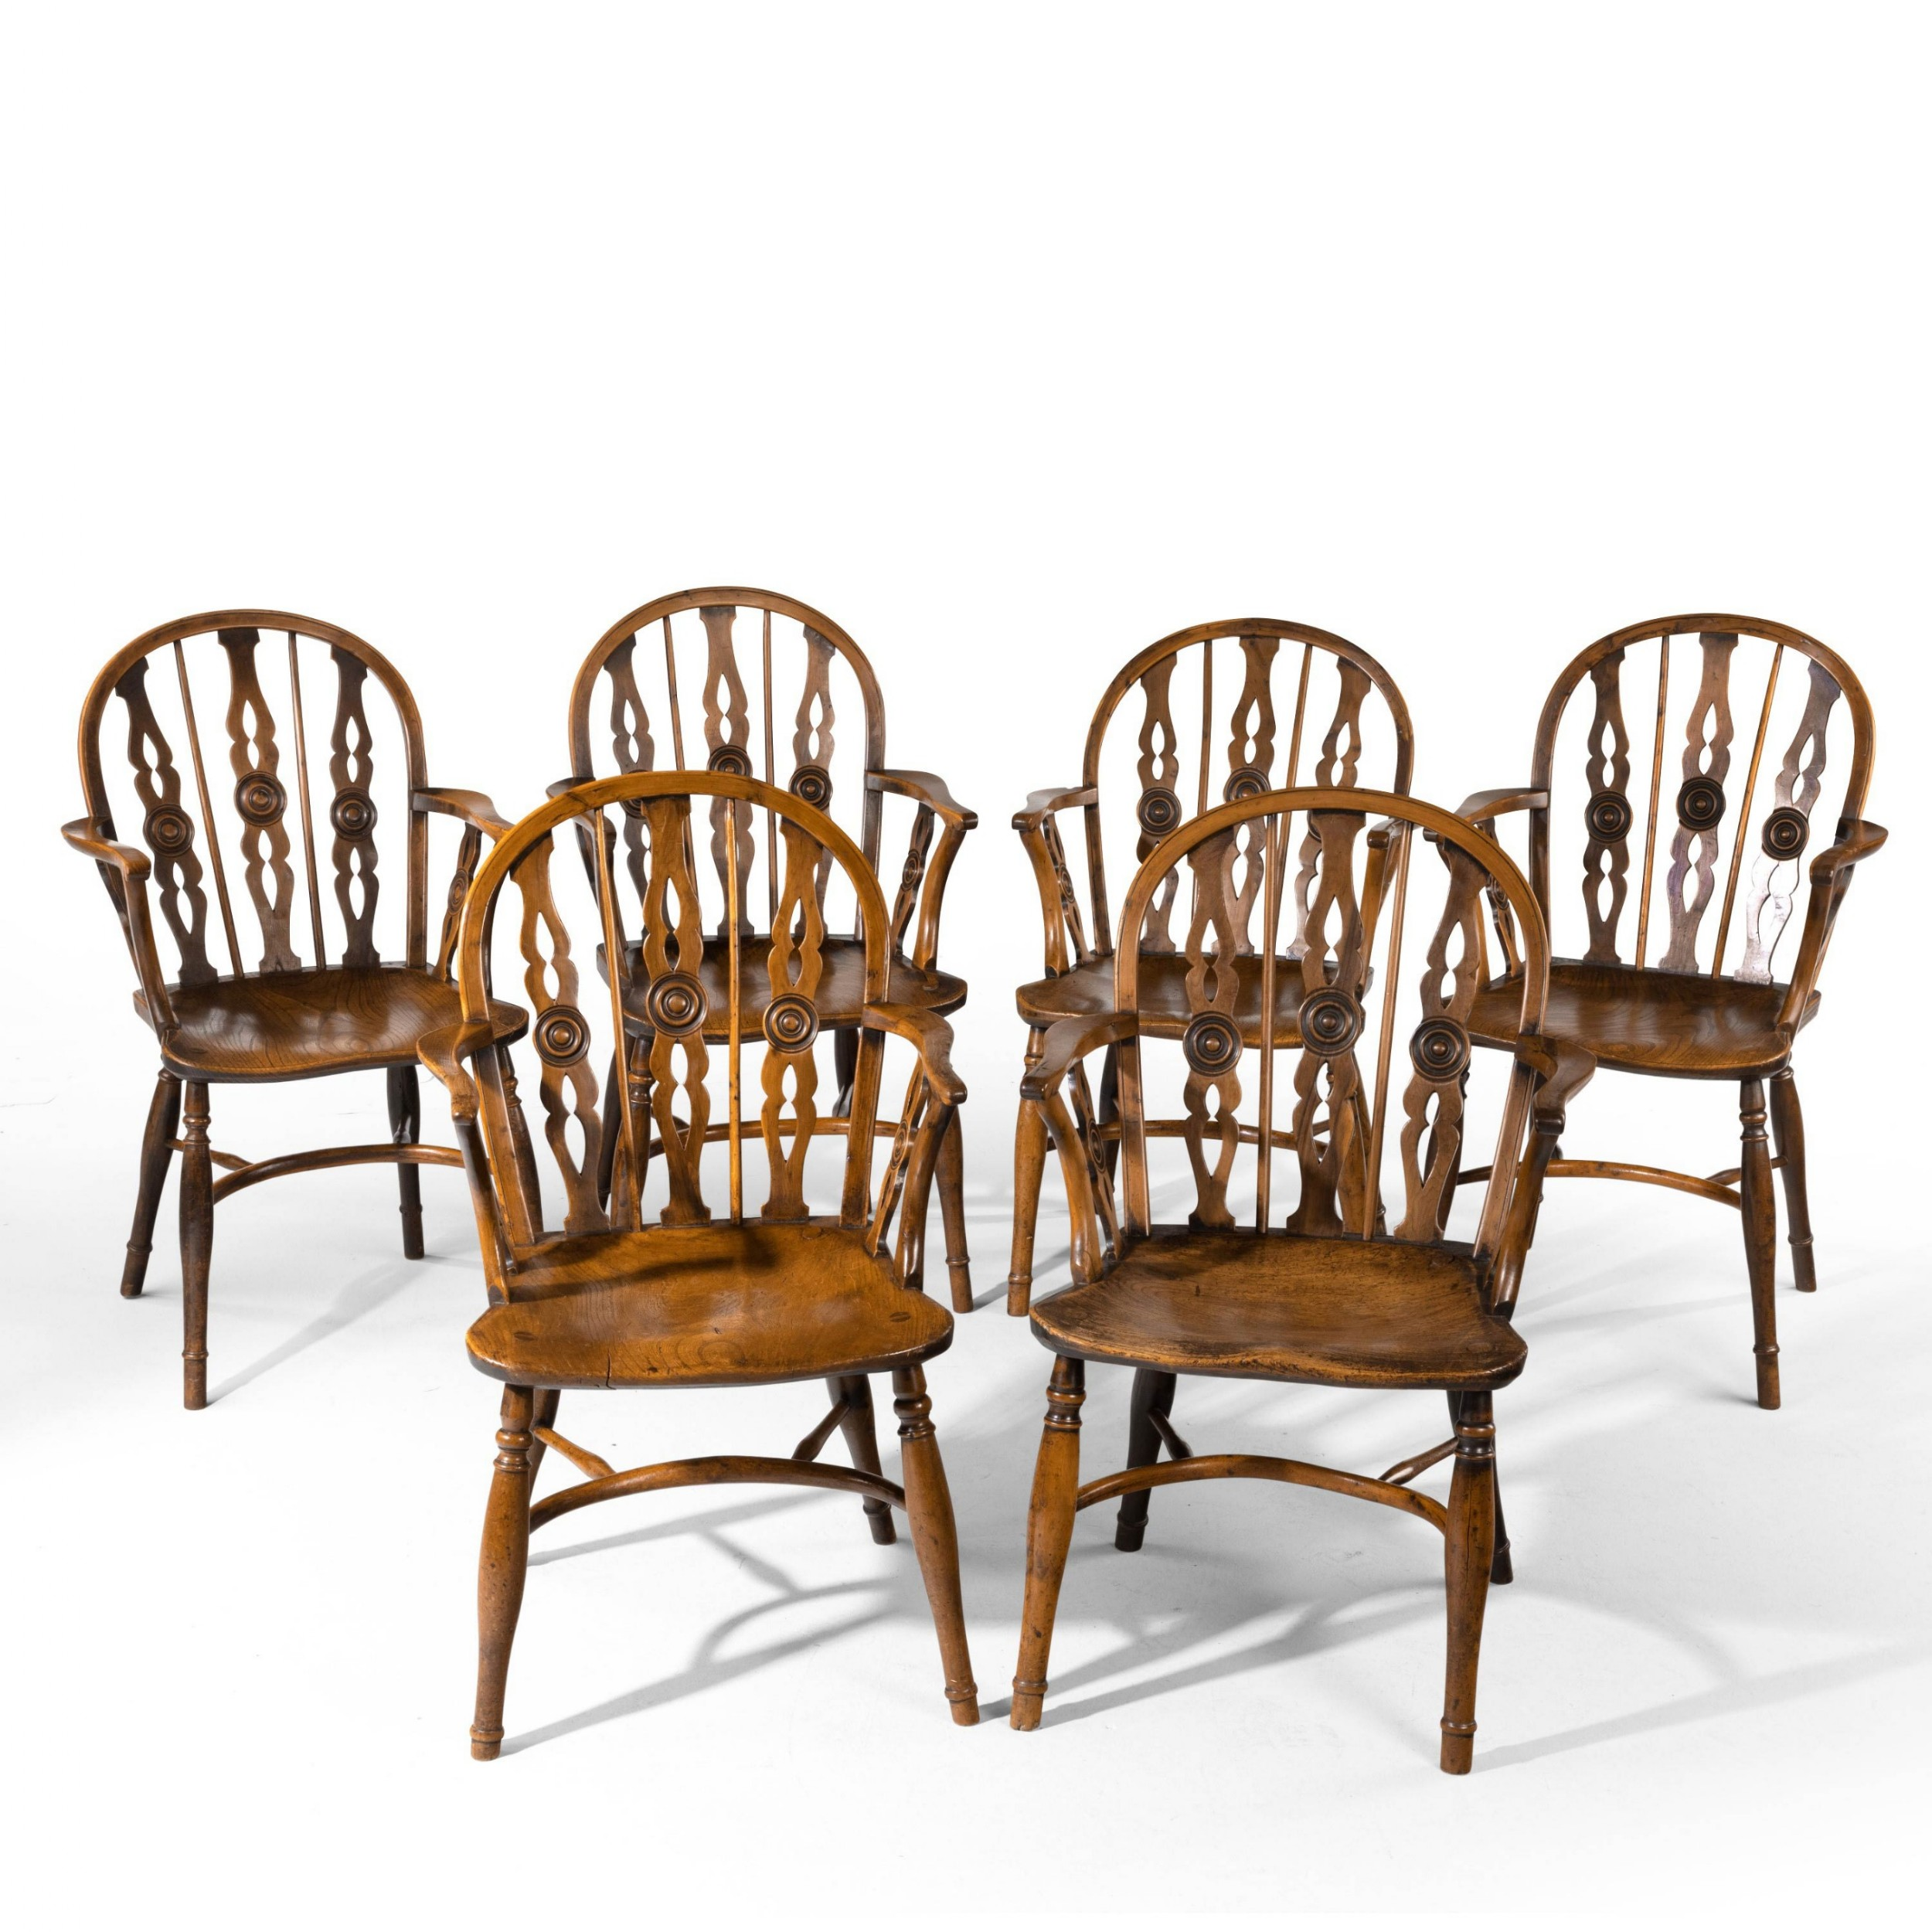 an attractive matched set of six early 19th century thames valley yew tree chairs